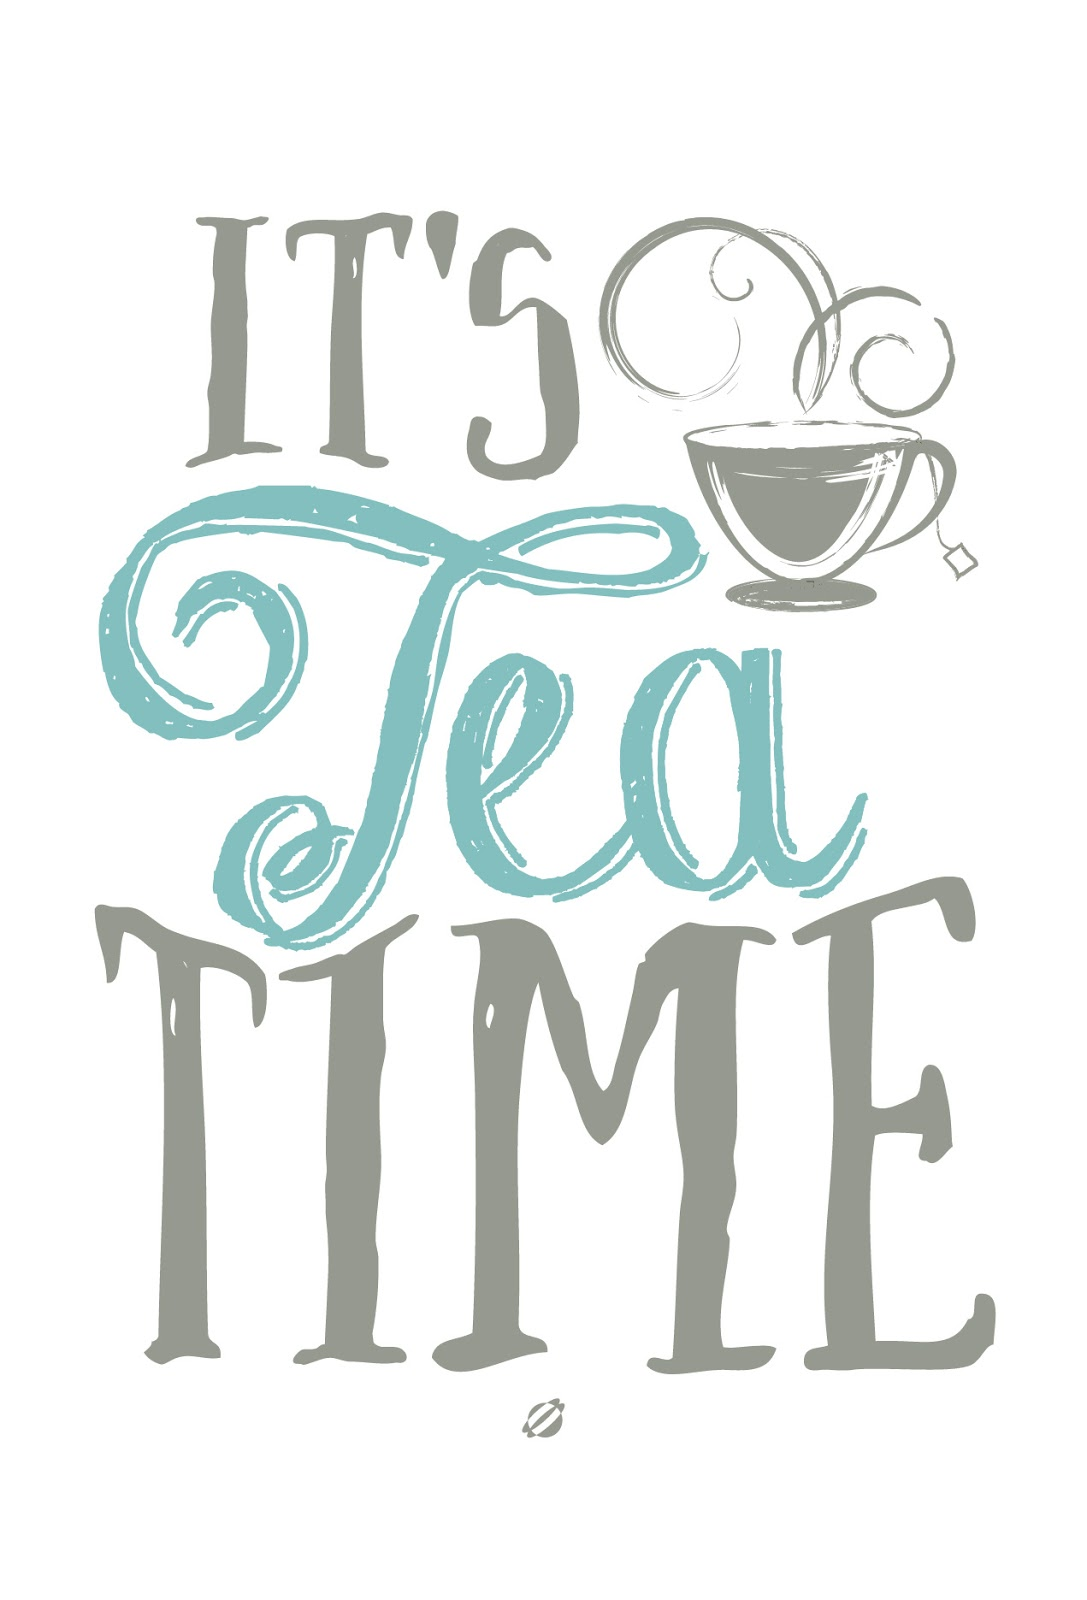 LostBumblebee ©2014 It's Tea Time - Free Printable- PERSONAL USE ONLY.